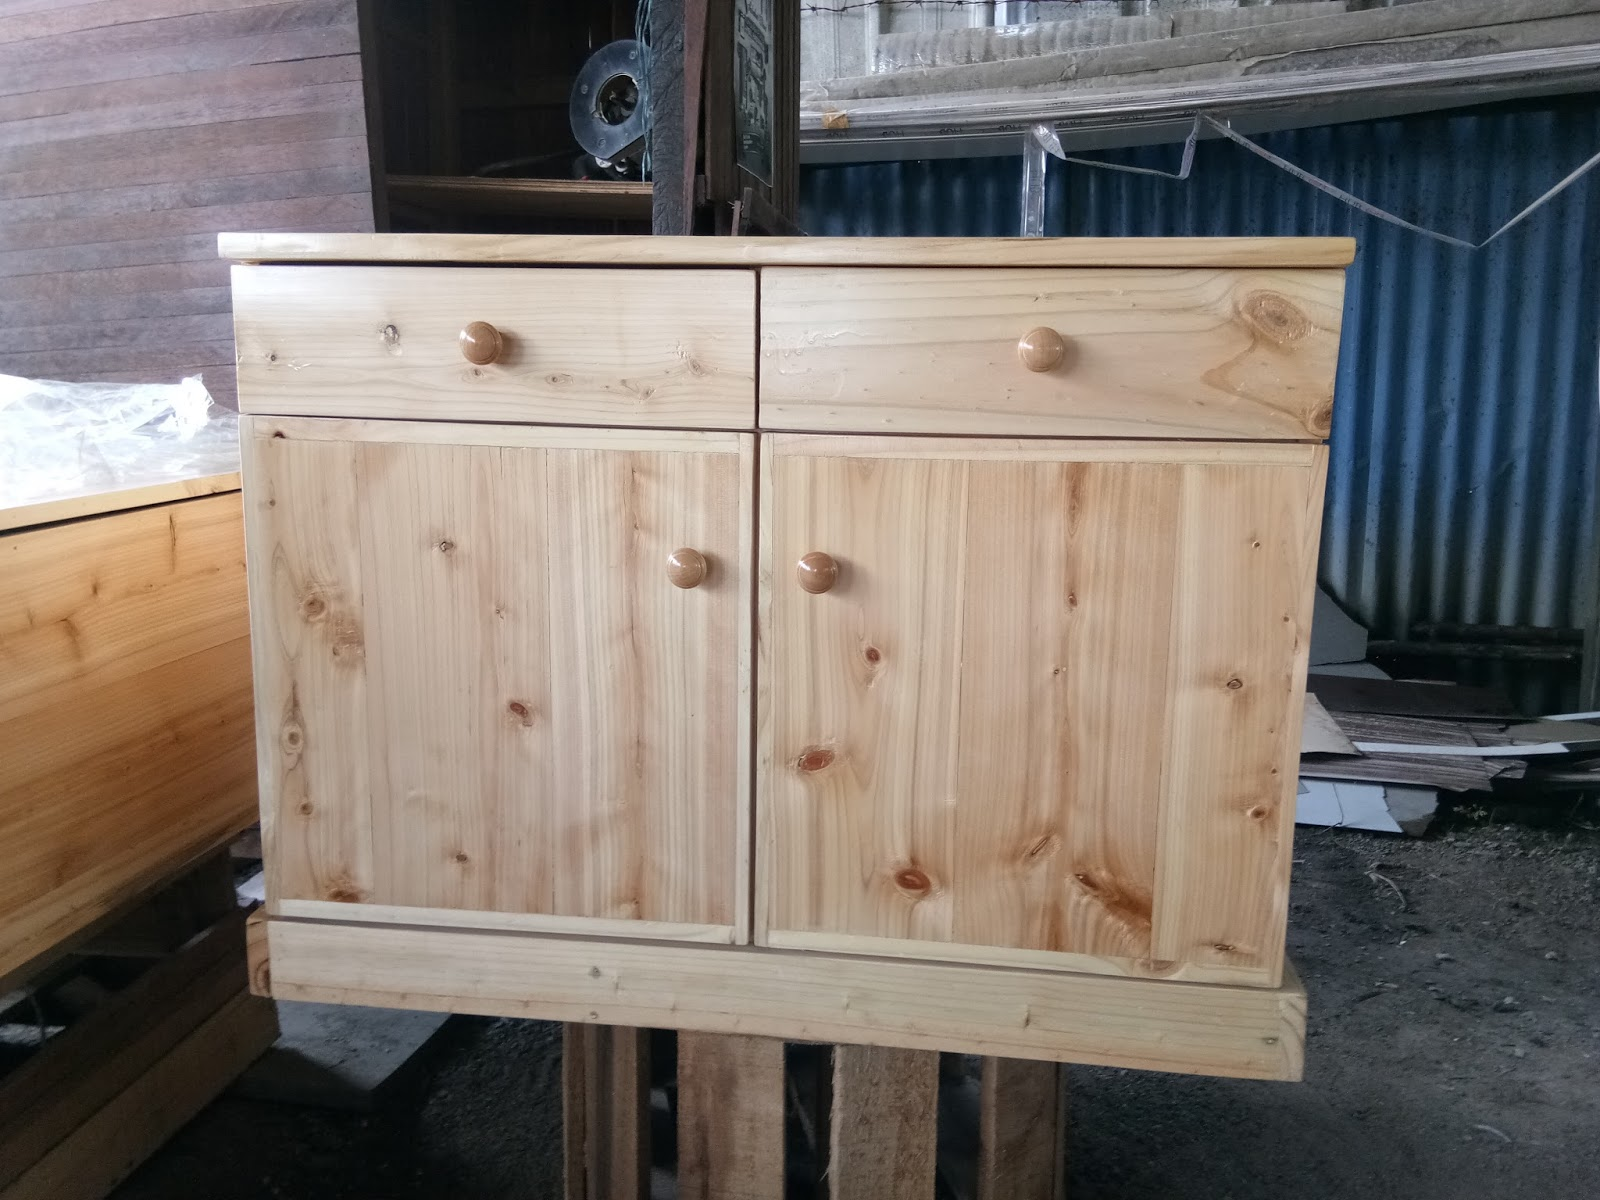 Jati Belanda Pekanbaru Wood Furniture 0812 6880 4257